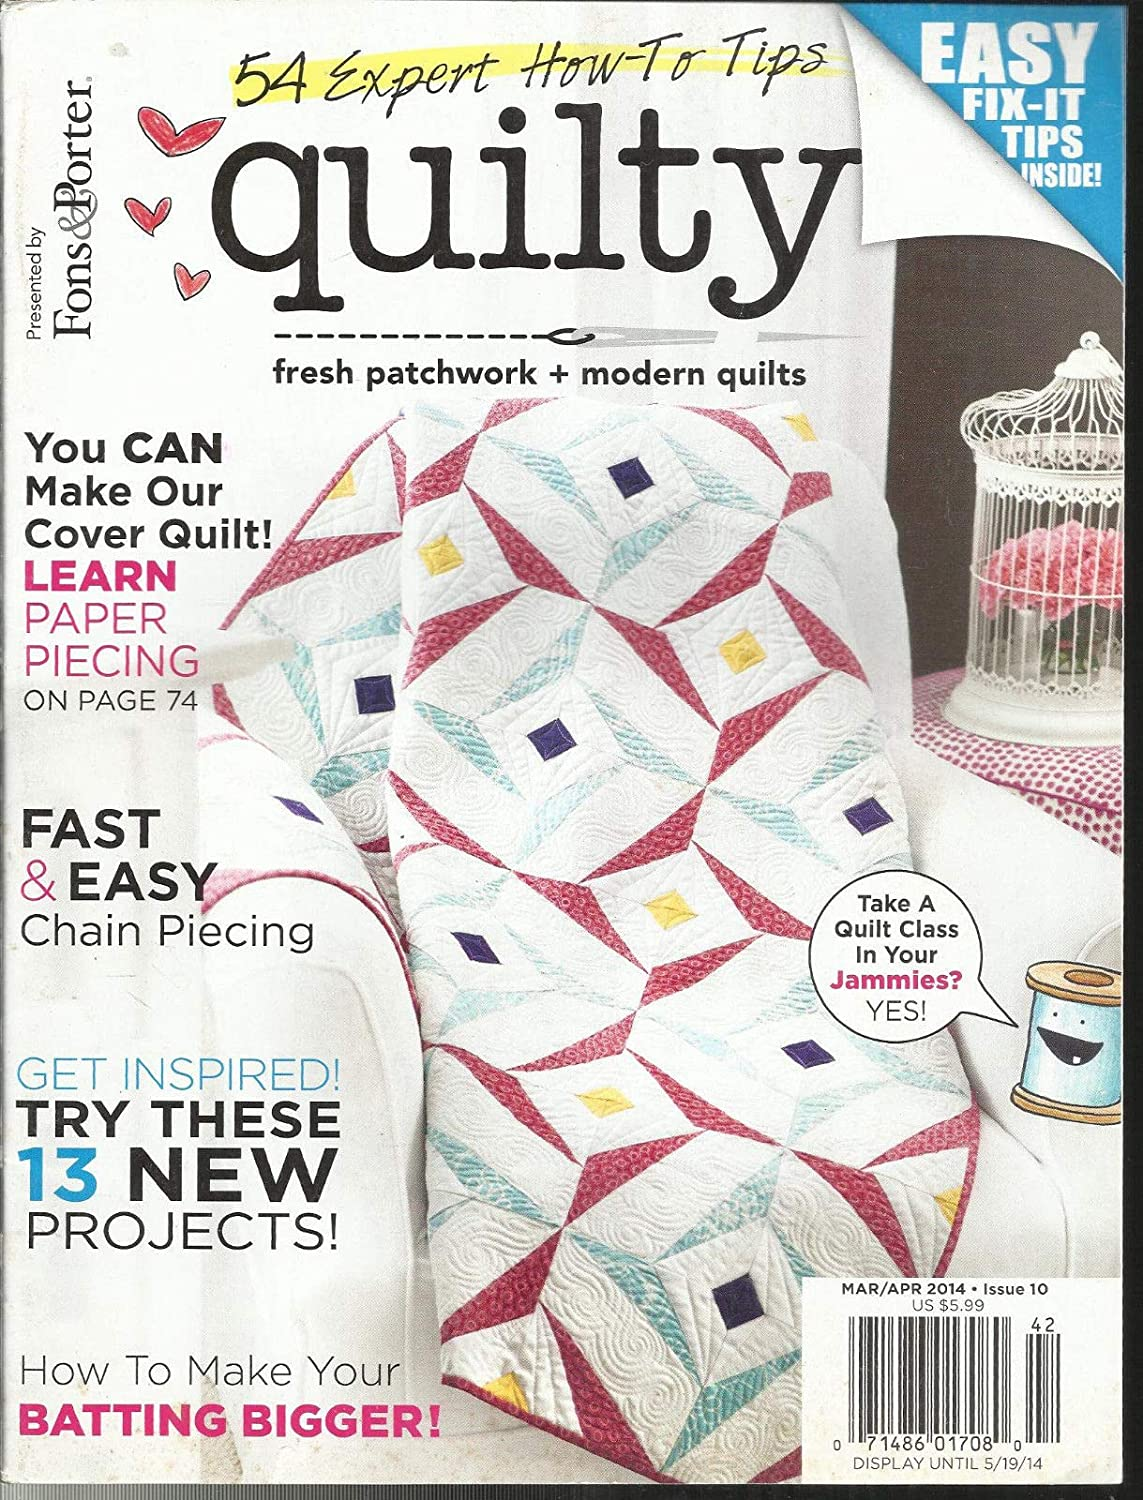 MARCH//APRIL MODERN QUILTS FONS /& PORTER 2014 FRESH PATCH WORK QUILTY